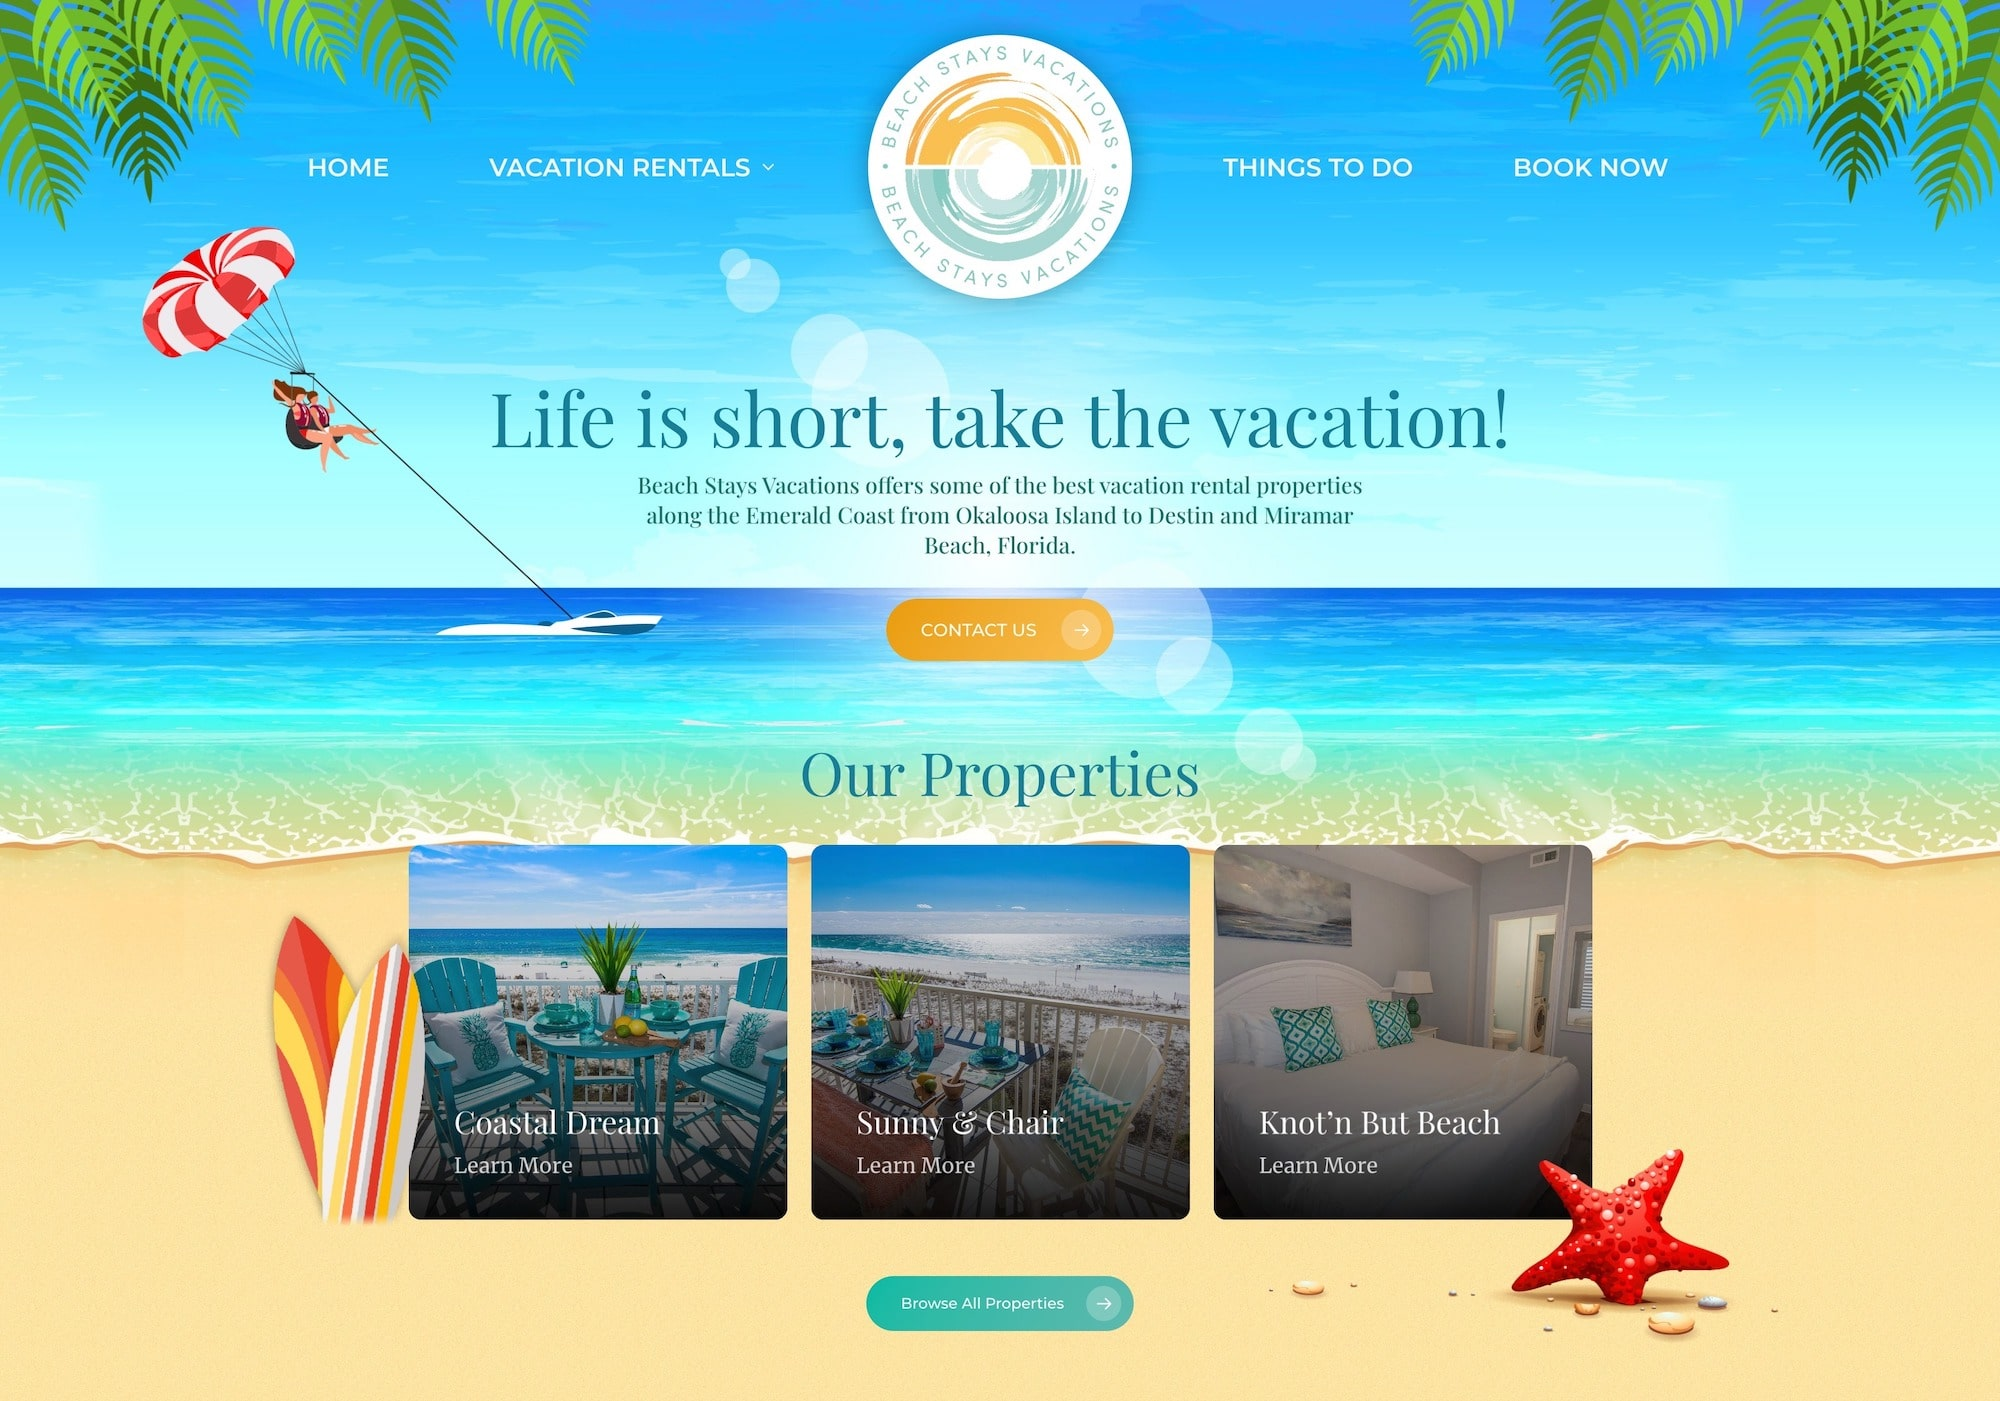 5 Quick Web Design Tips For an Outstanding Site